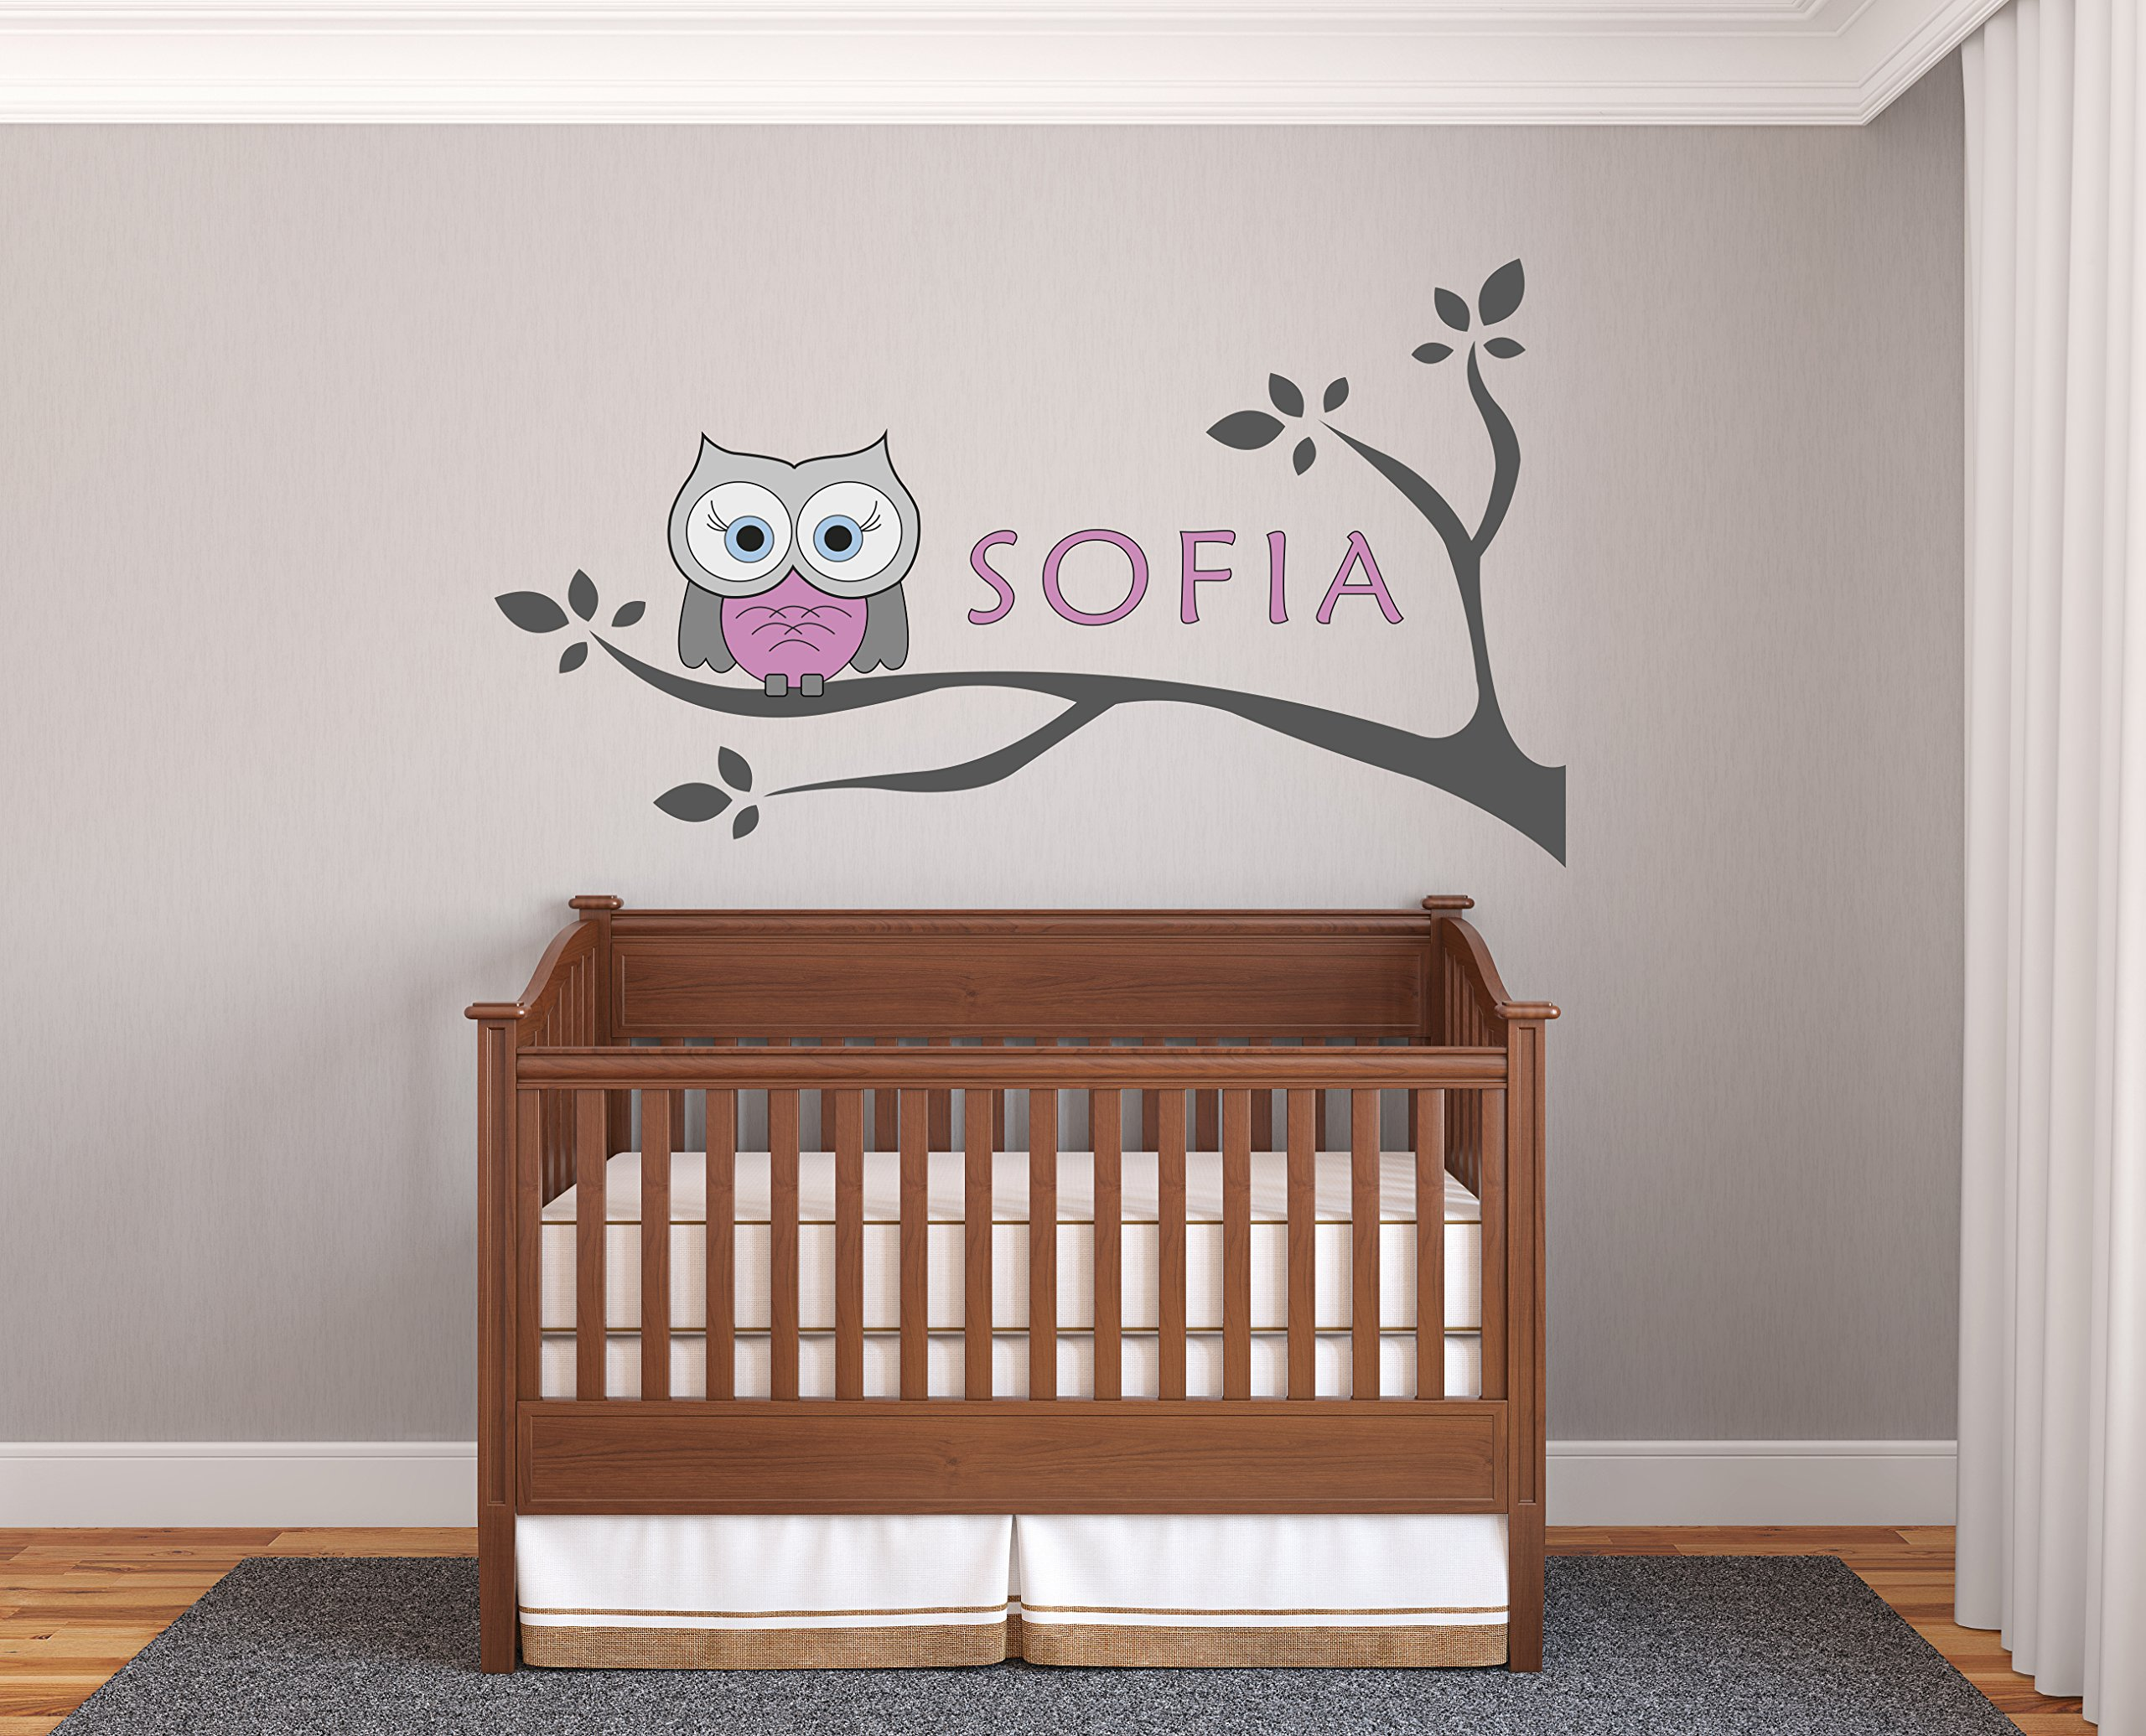 Personalized Name Owl And Branches - Prime Series - Baby Girl - Nursery Wall Decal For Baby Room Decorations - Mural Wall Decal Sticker For Home Children's Bedroom(02J) (Wide 34''x20'' Height)